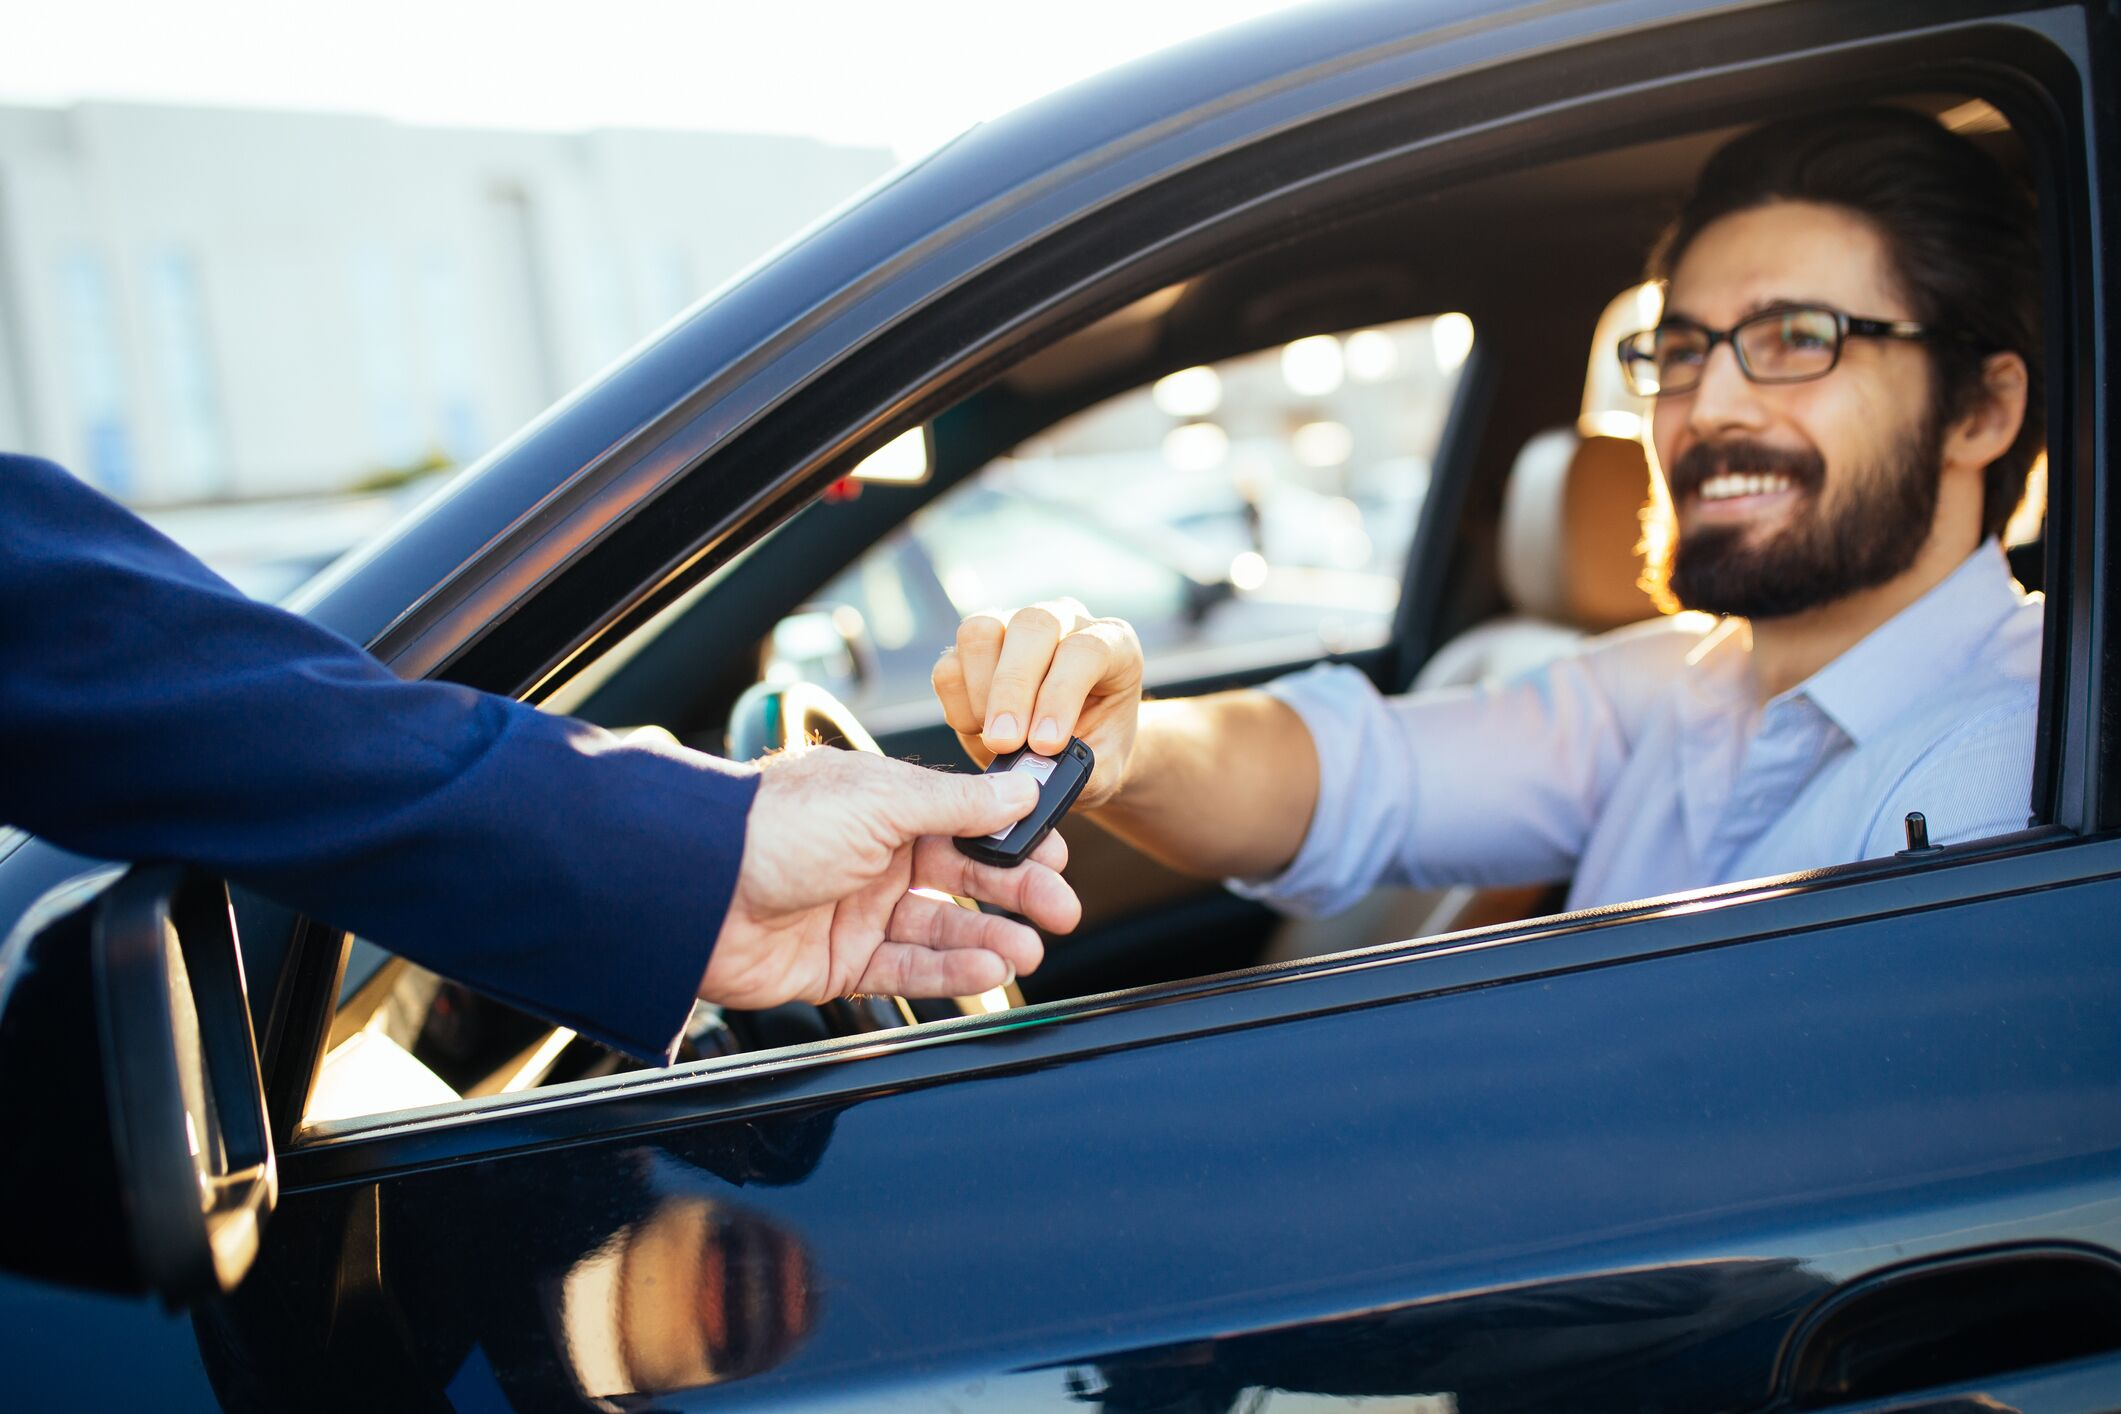 Salesman Handing Key to Driver in Car